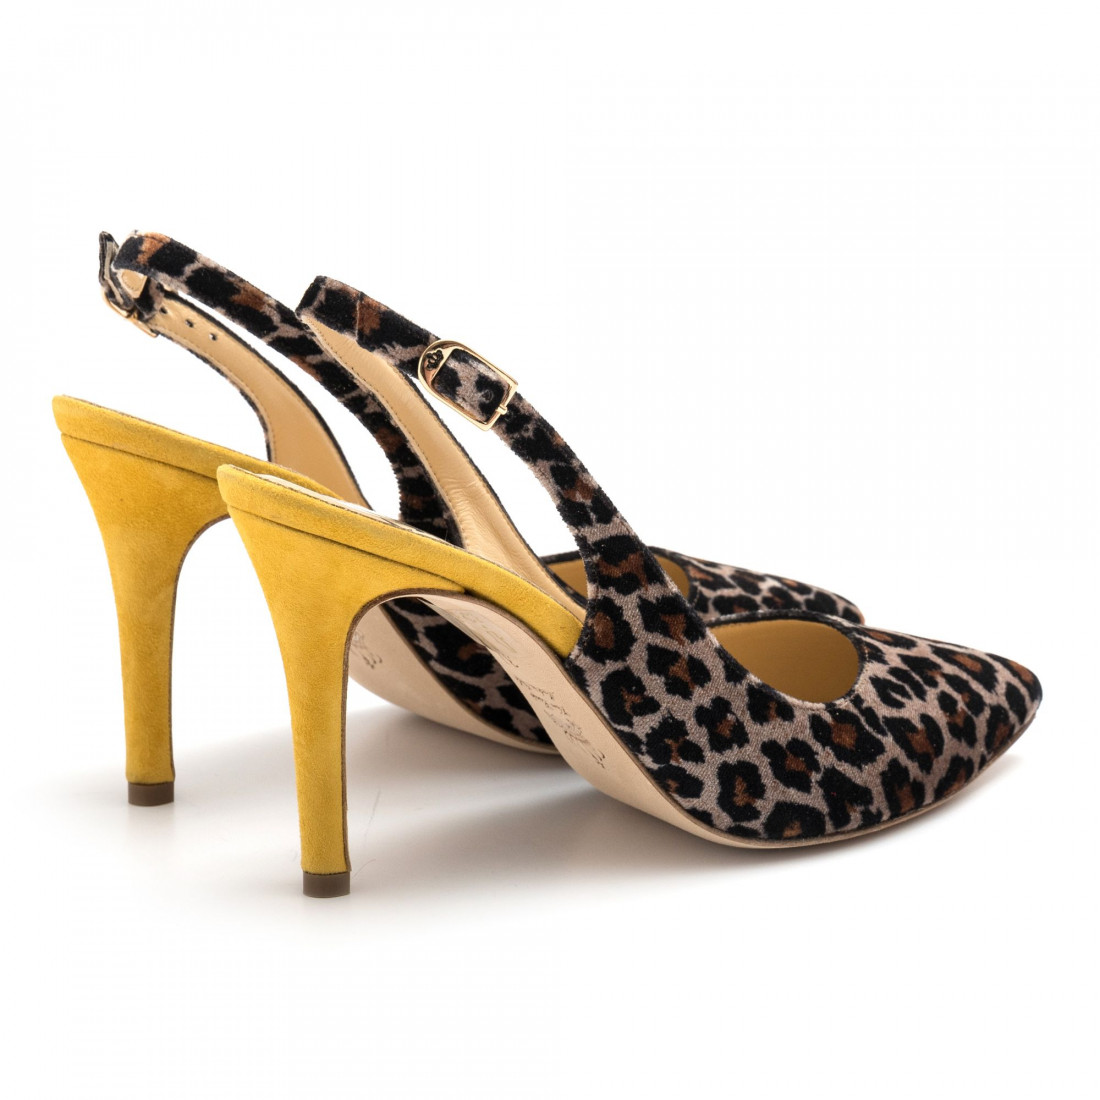 pumps woman larianna ch 2002leopardo taupe 4577